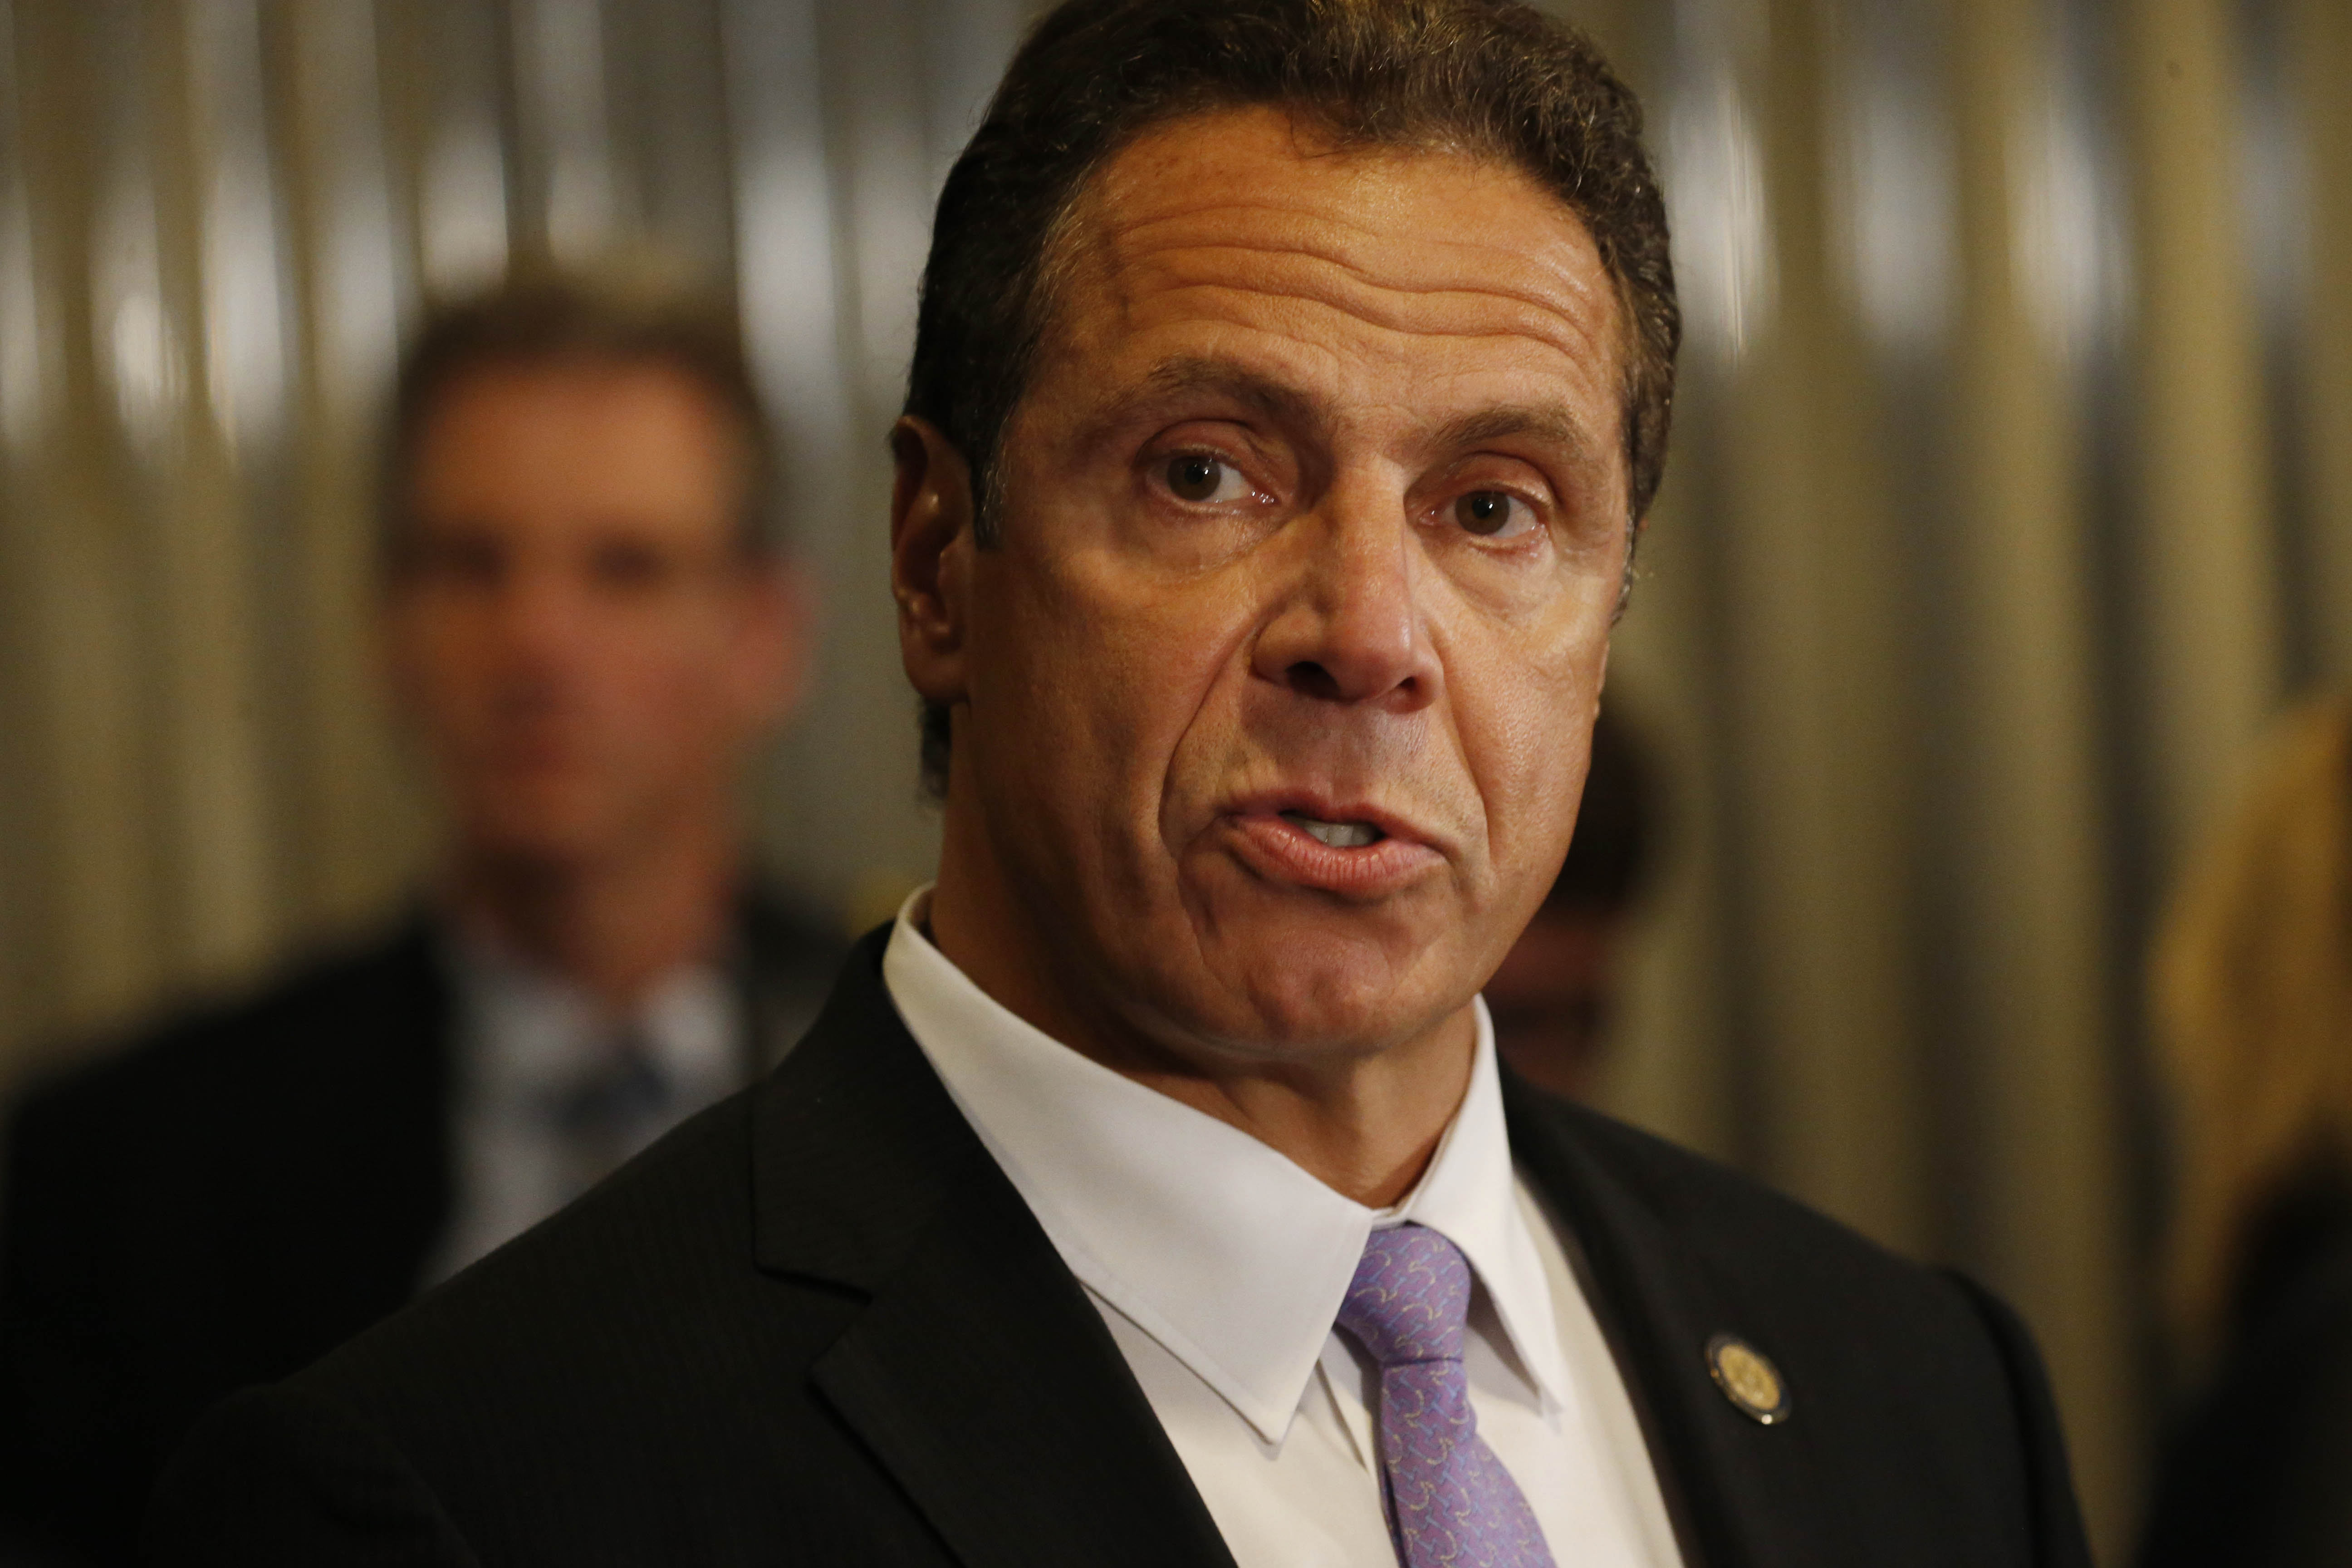 Gov. Andrew Cuomo answers questions from reporters on Sept. 23, 2016 in Buffalo. Cuomo visited Buffalo the day after nine people were arrested in a public corruption probe involving Cuomo's biggest Upstate New York economic development projects. (Derek Gee/Buffalo News)